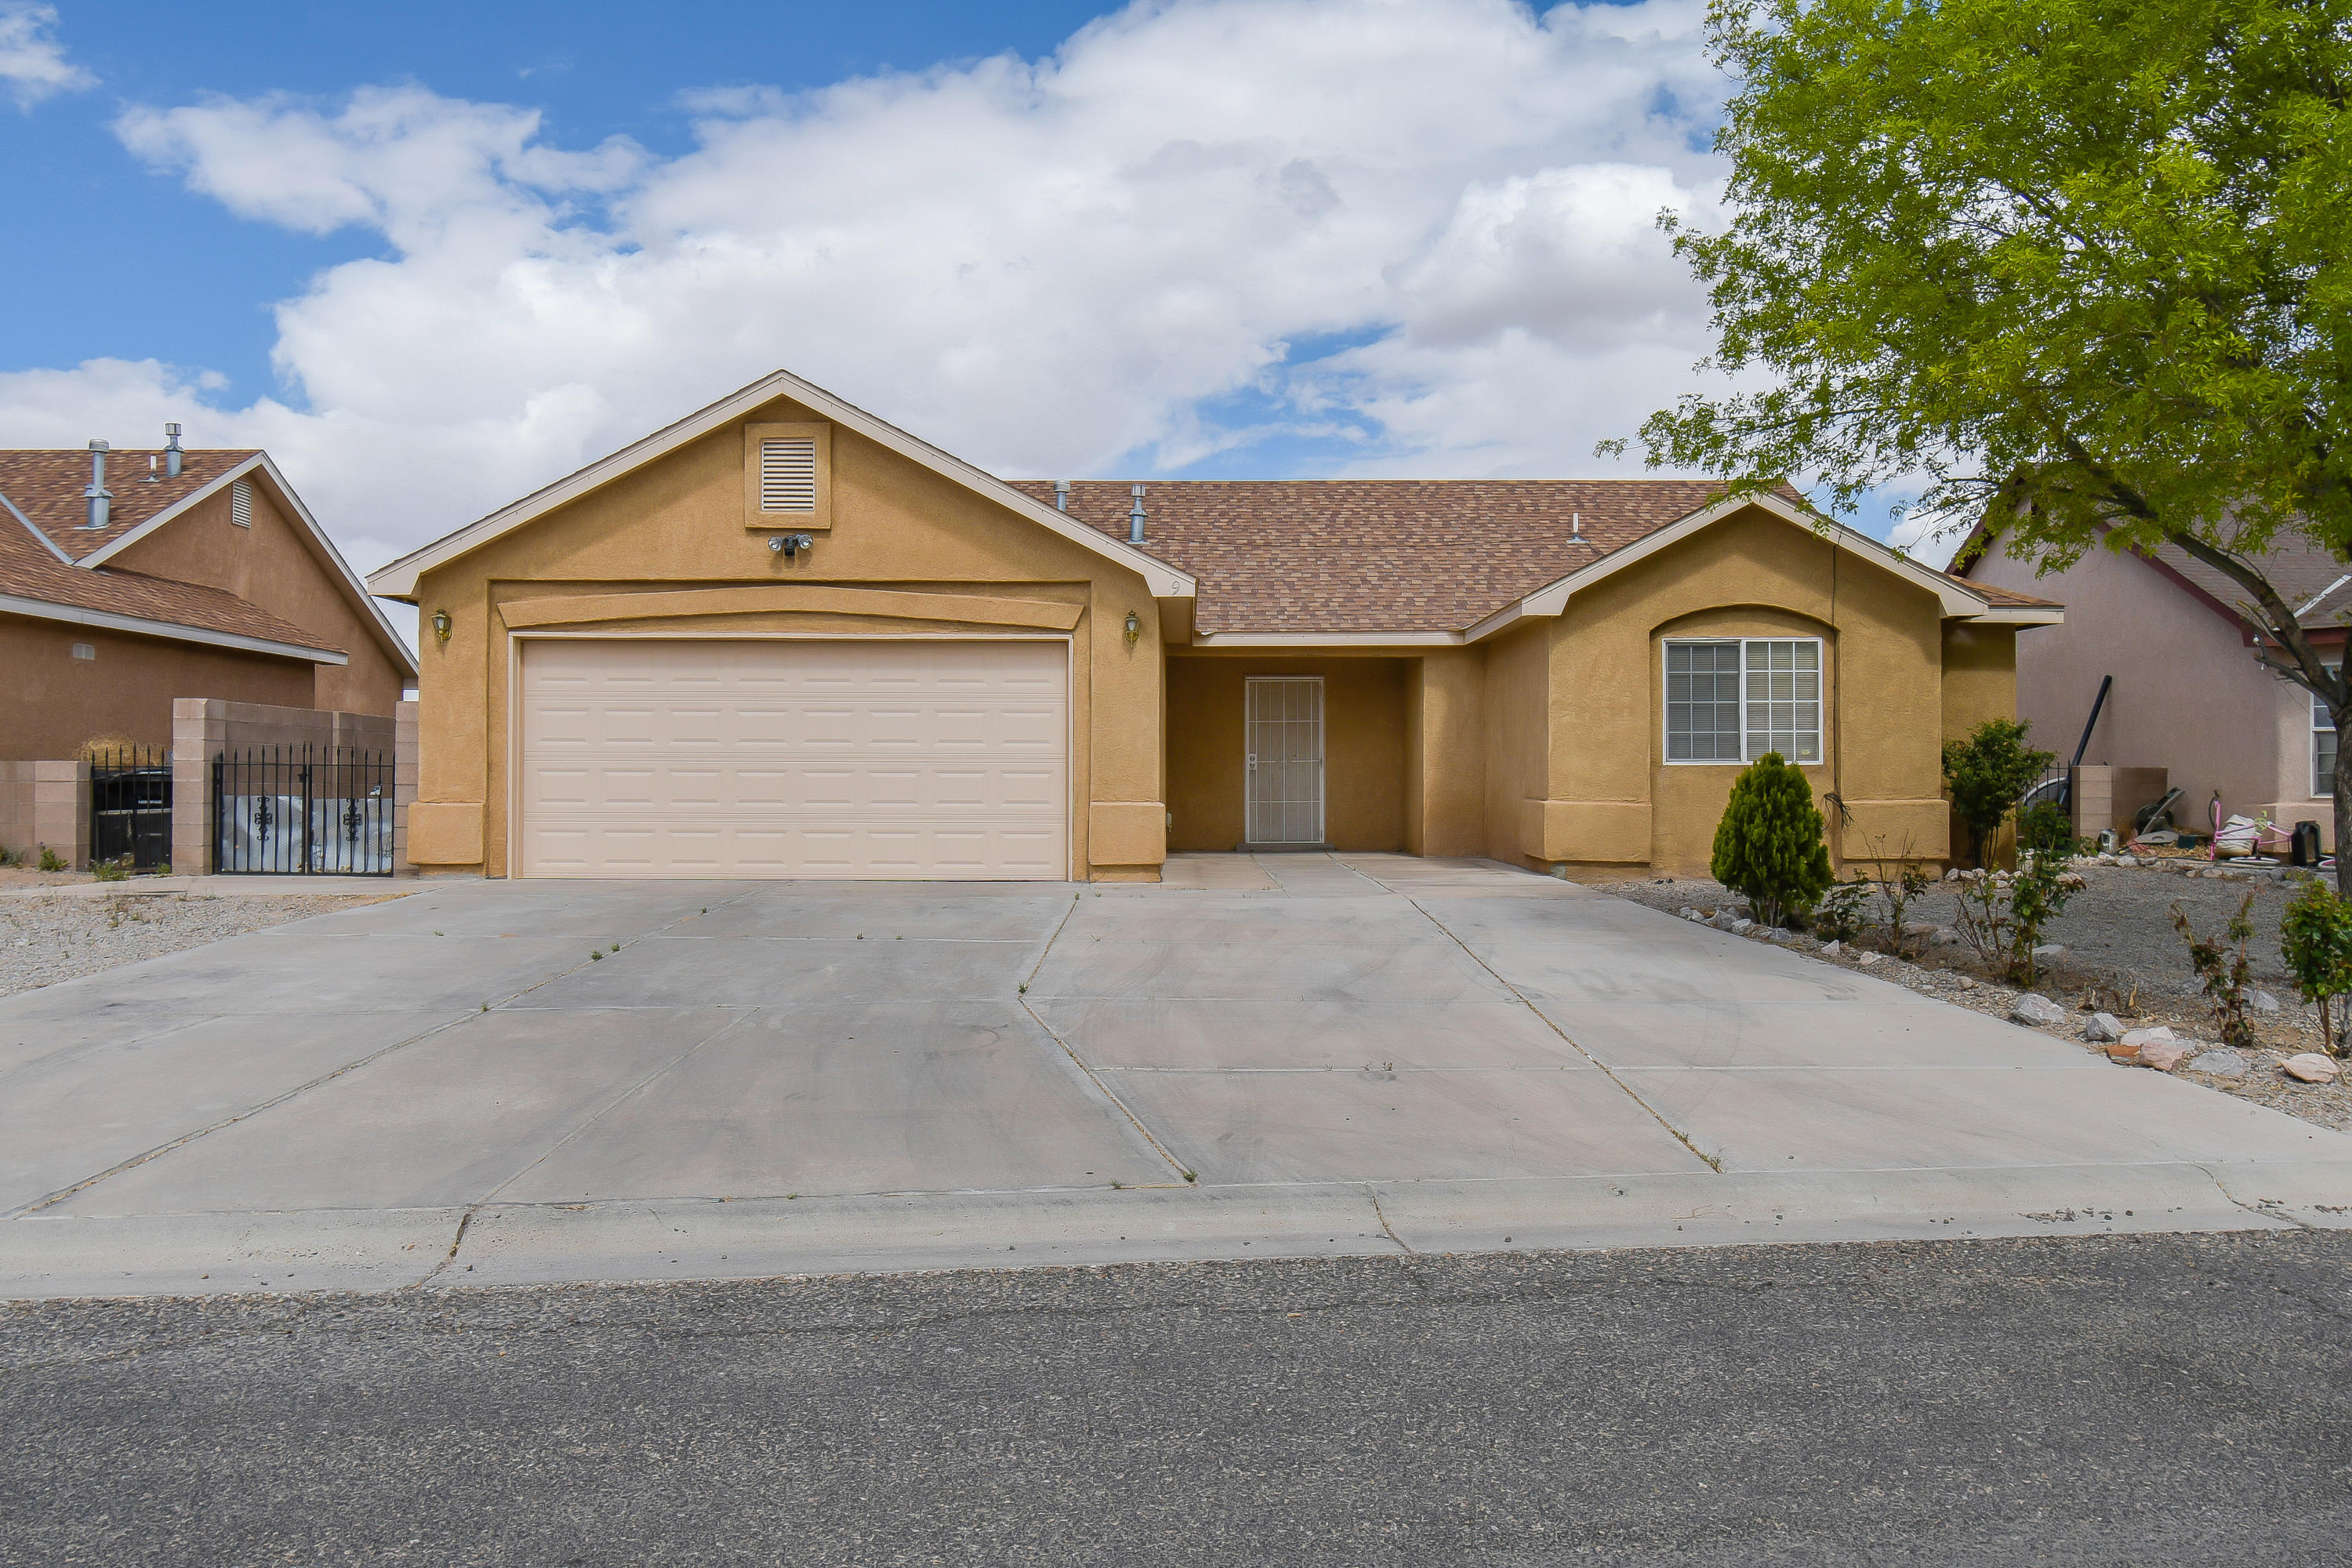 Light and bright home with an open floor plan, 3 bedroom with 2 full baths and large 2 car garage. Enjoy the generous sized backyard with views of the west mesas, fruit trees and a storage unit. Tucked away from the hustle and bustle yet still close to all the daily amenities. Come see this great home for yourself!